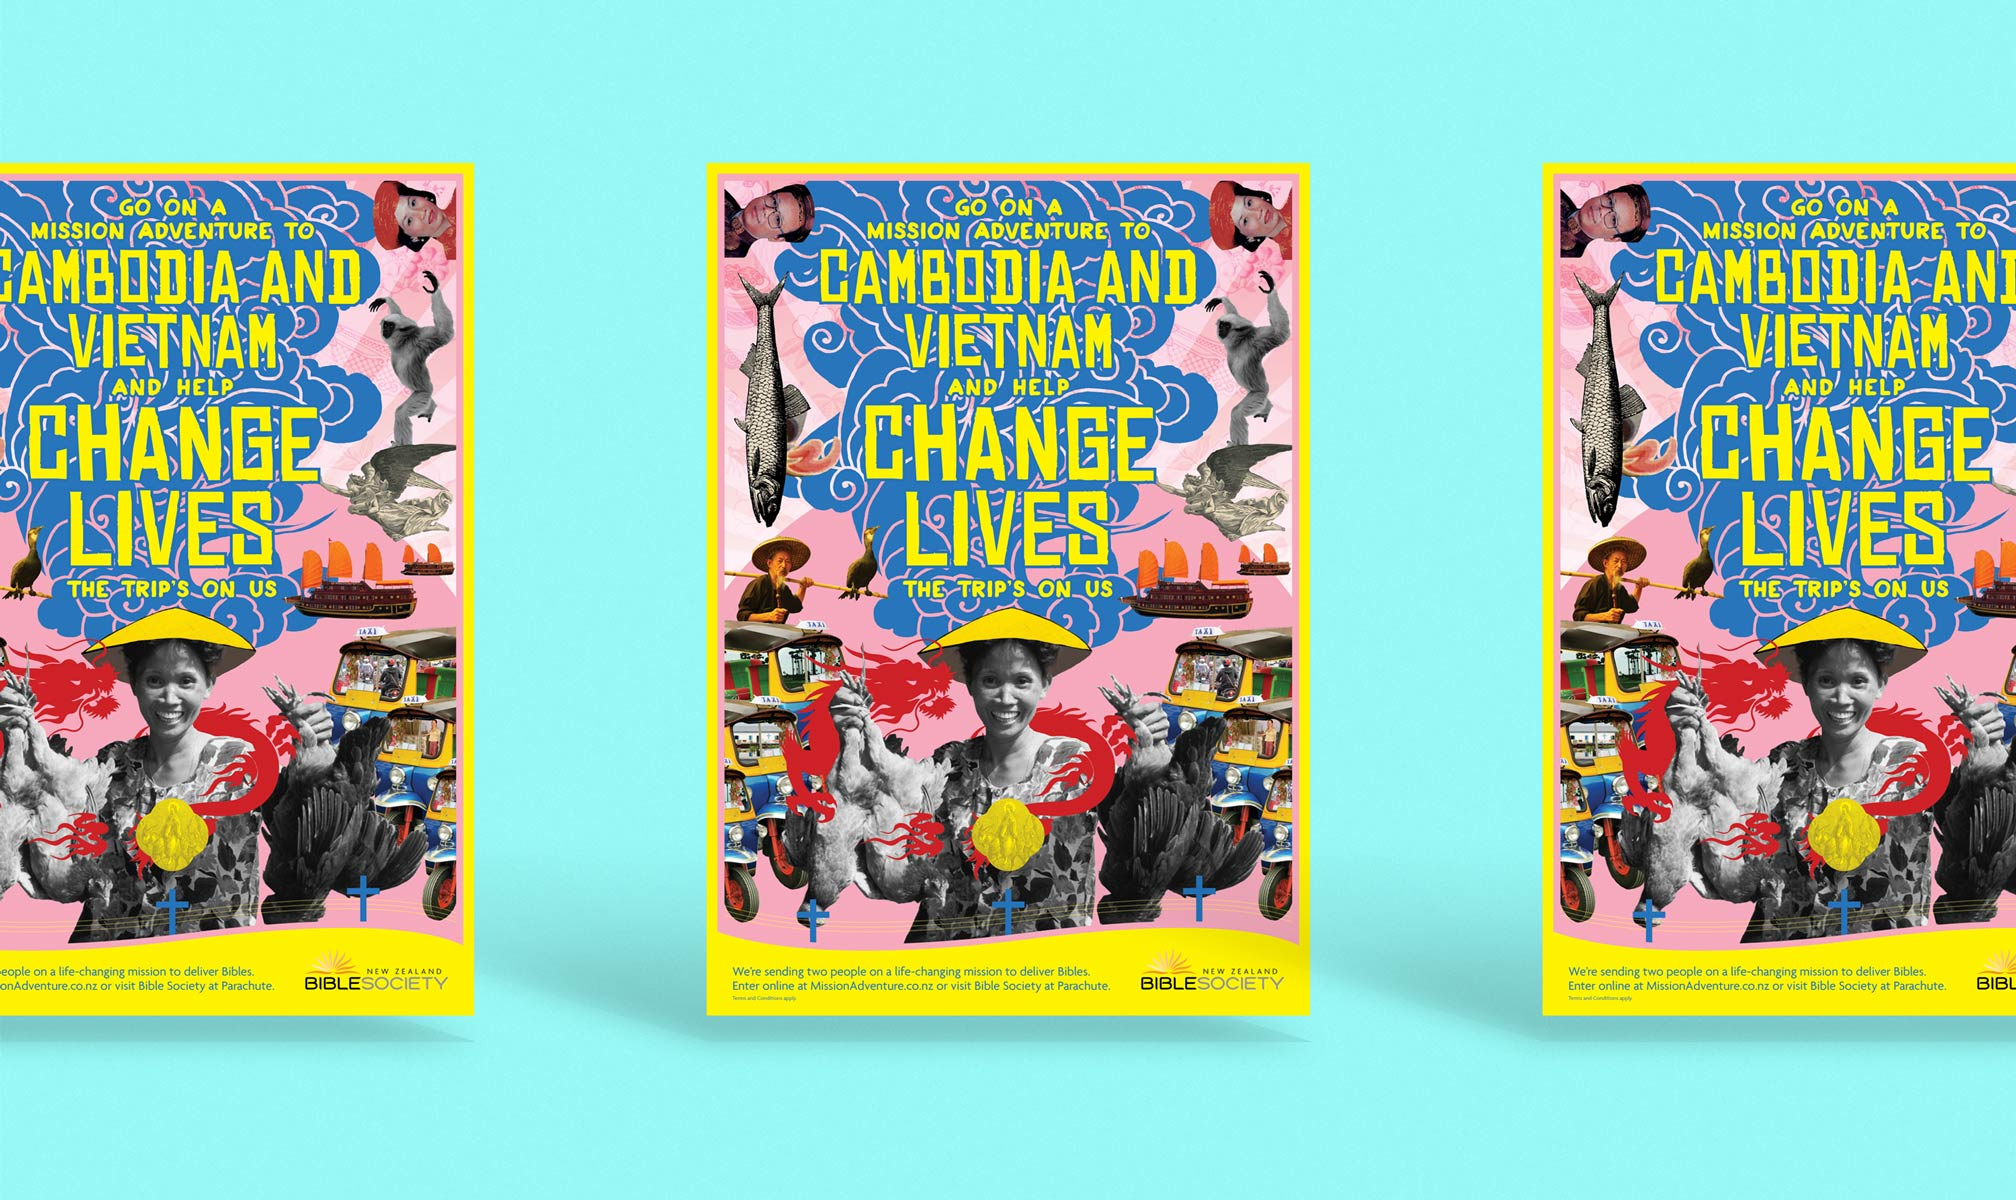 This 'Change Lives' poster aims to engross and delight. The concept, a visual slap, is based on the premise that travel to the orient overwhelms westerners.